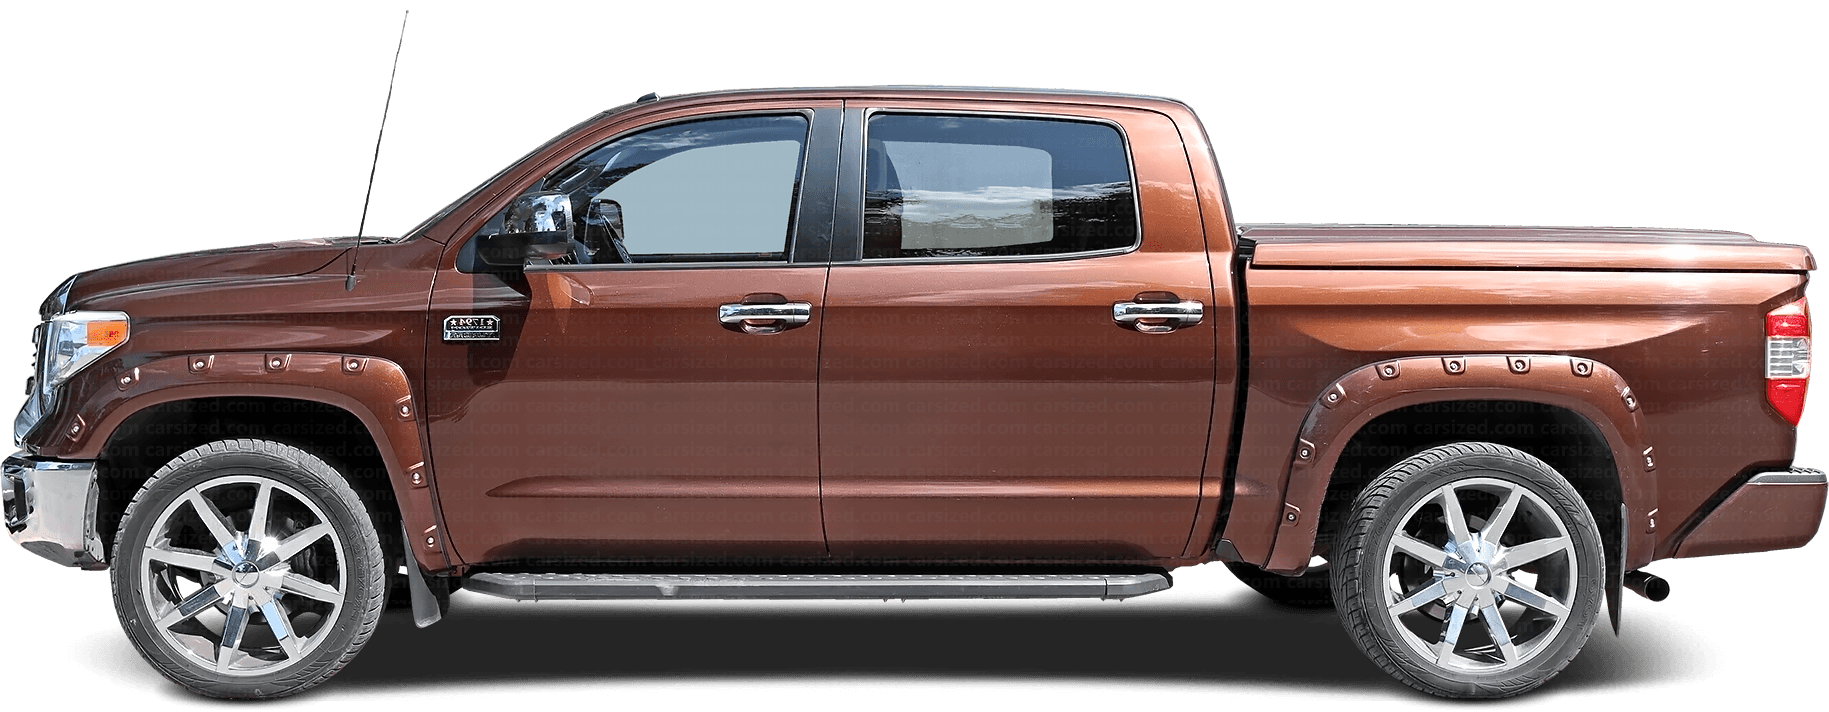 Toyota Tundra pick-up 2014-present Side View